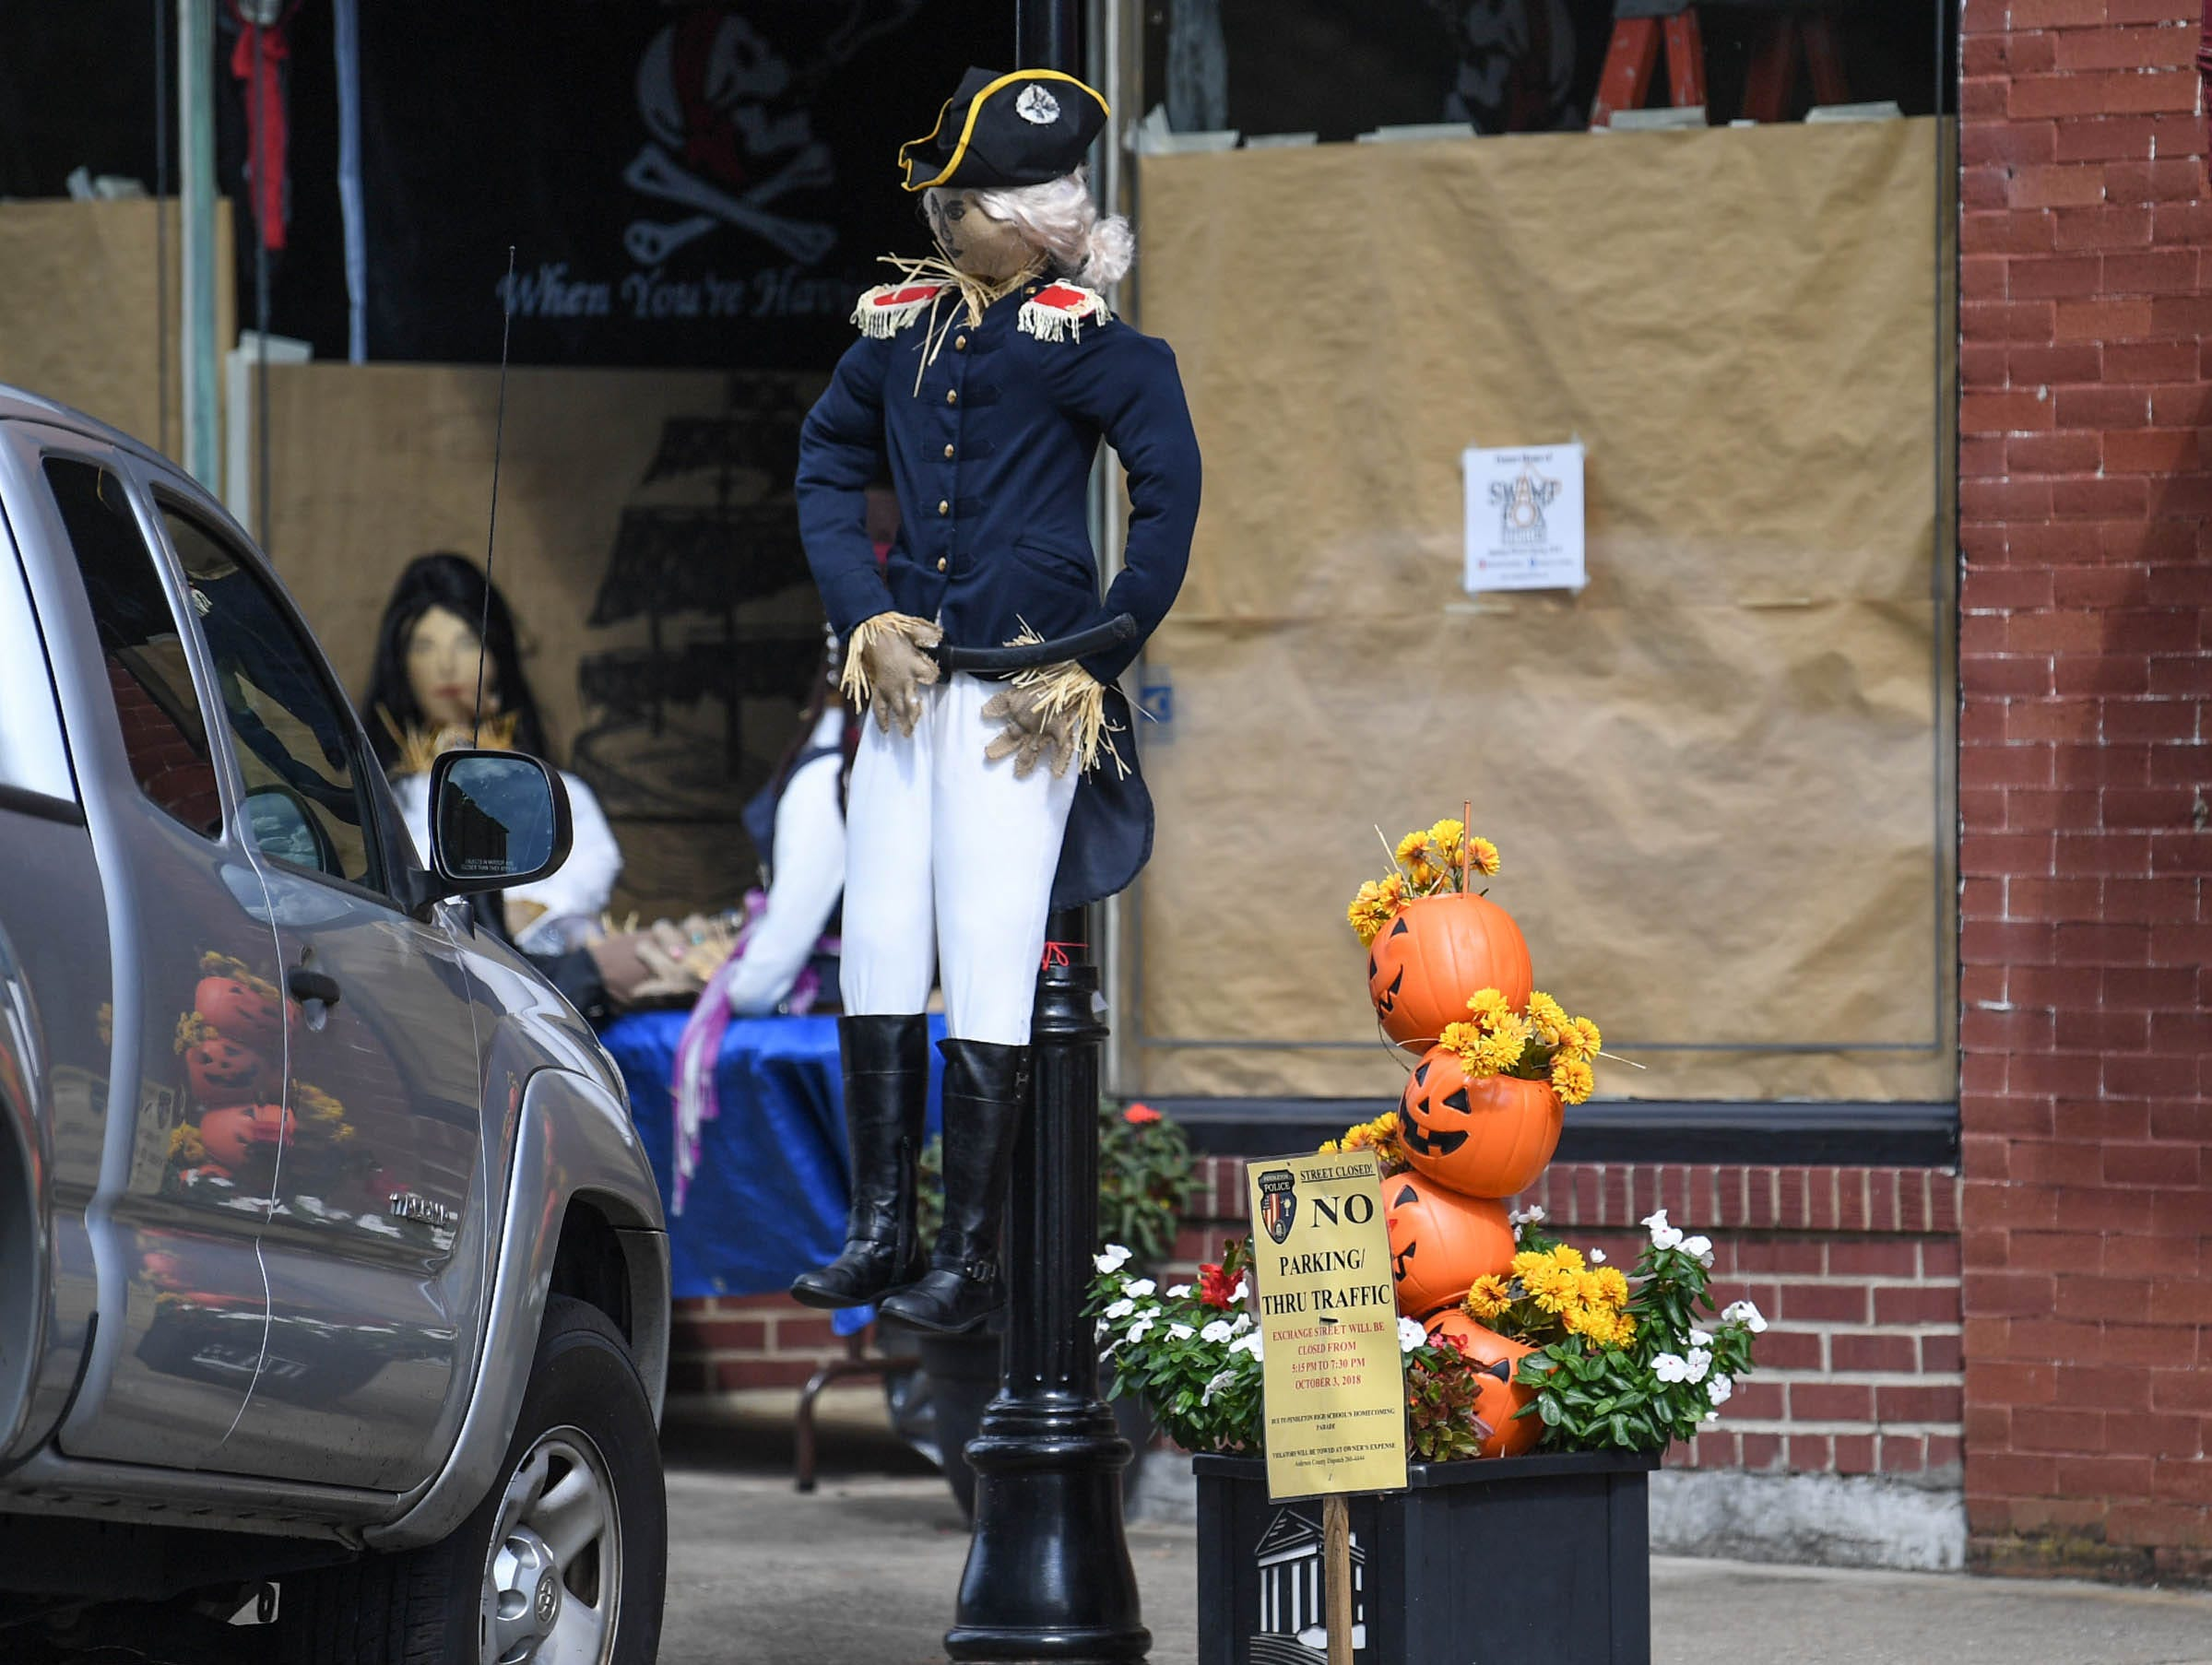 A scarecrow made for The Pendleton Scarecrow Contest leading up to the 20th Fall Harvest Festival in the village green Saturday, October 6 from 10 a.m. to 5 p.m. The annual contest in Pendleton for businesses, individuals, groups, organizations and churches who create fun not scary Scarecrows. People driving around the downtown square can see different theme scarecrows.